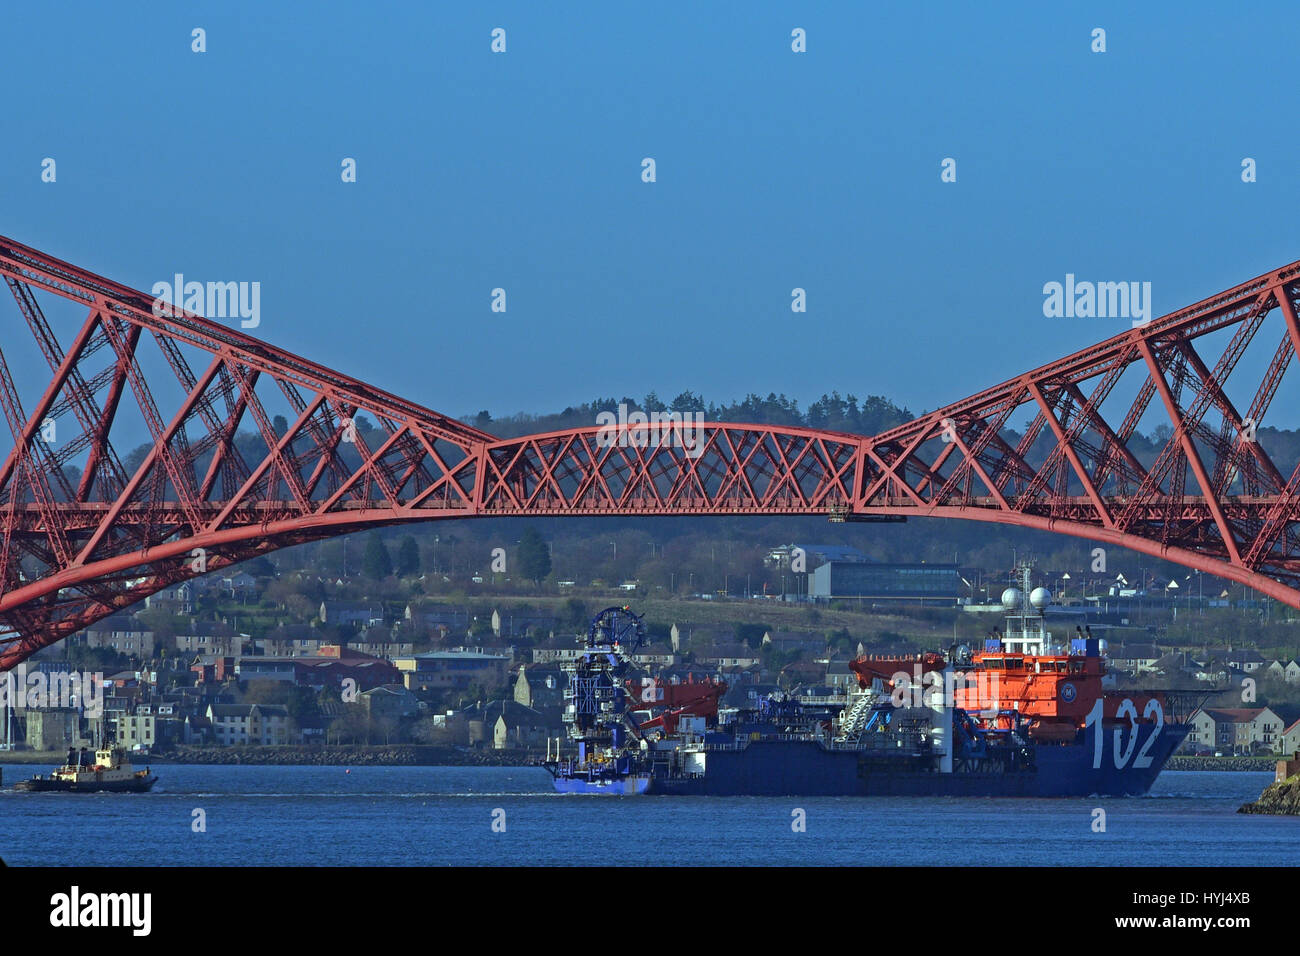 North Queensferry, Scotland, United Kingdom. 4th April, 2017. The ocean-going cable-laying ship North Ocean 102, - Stock Image